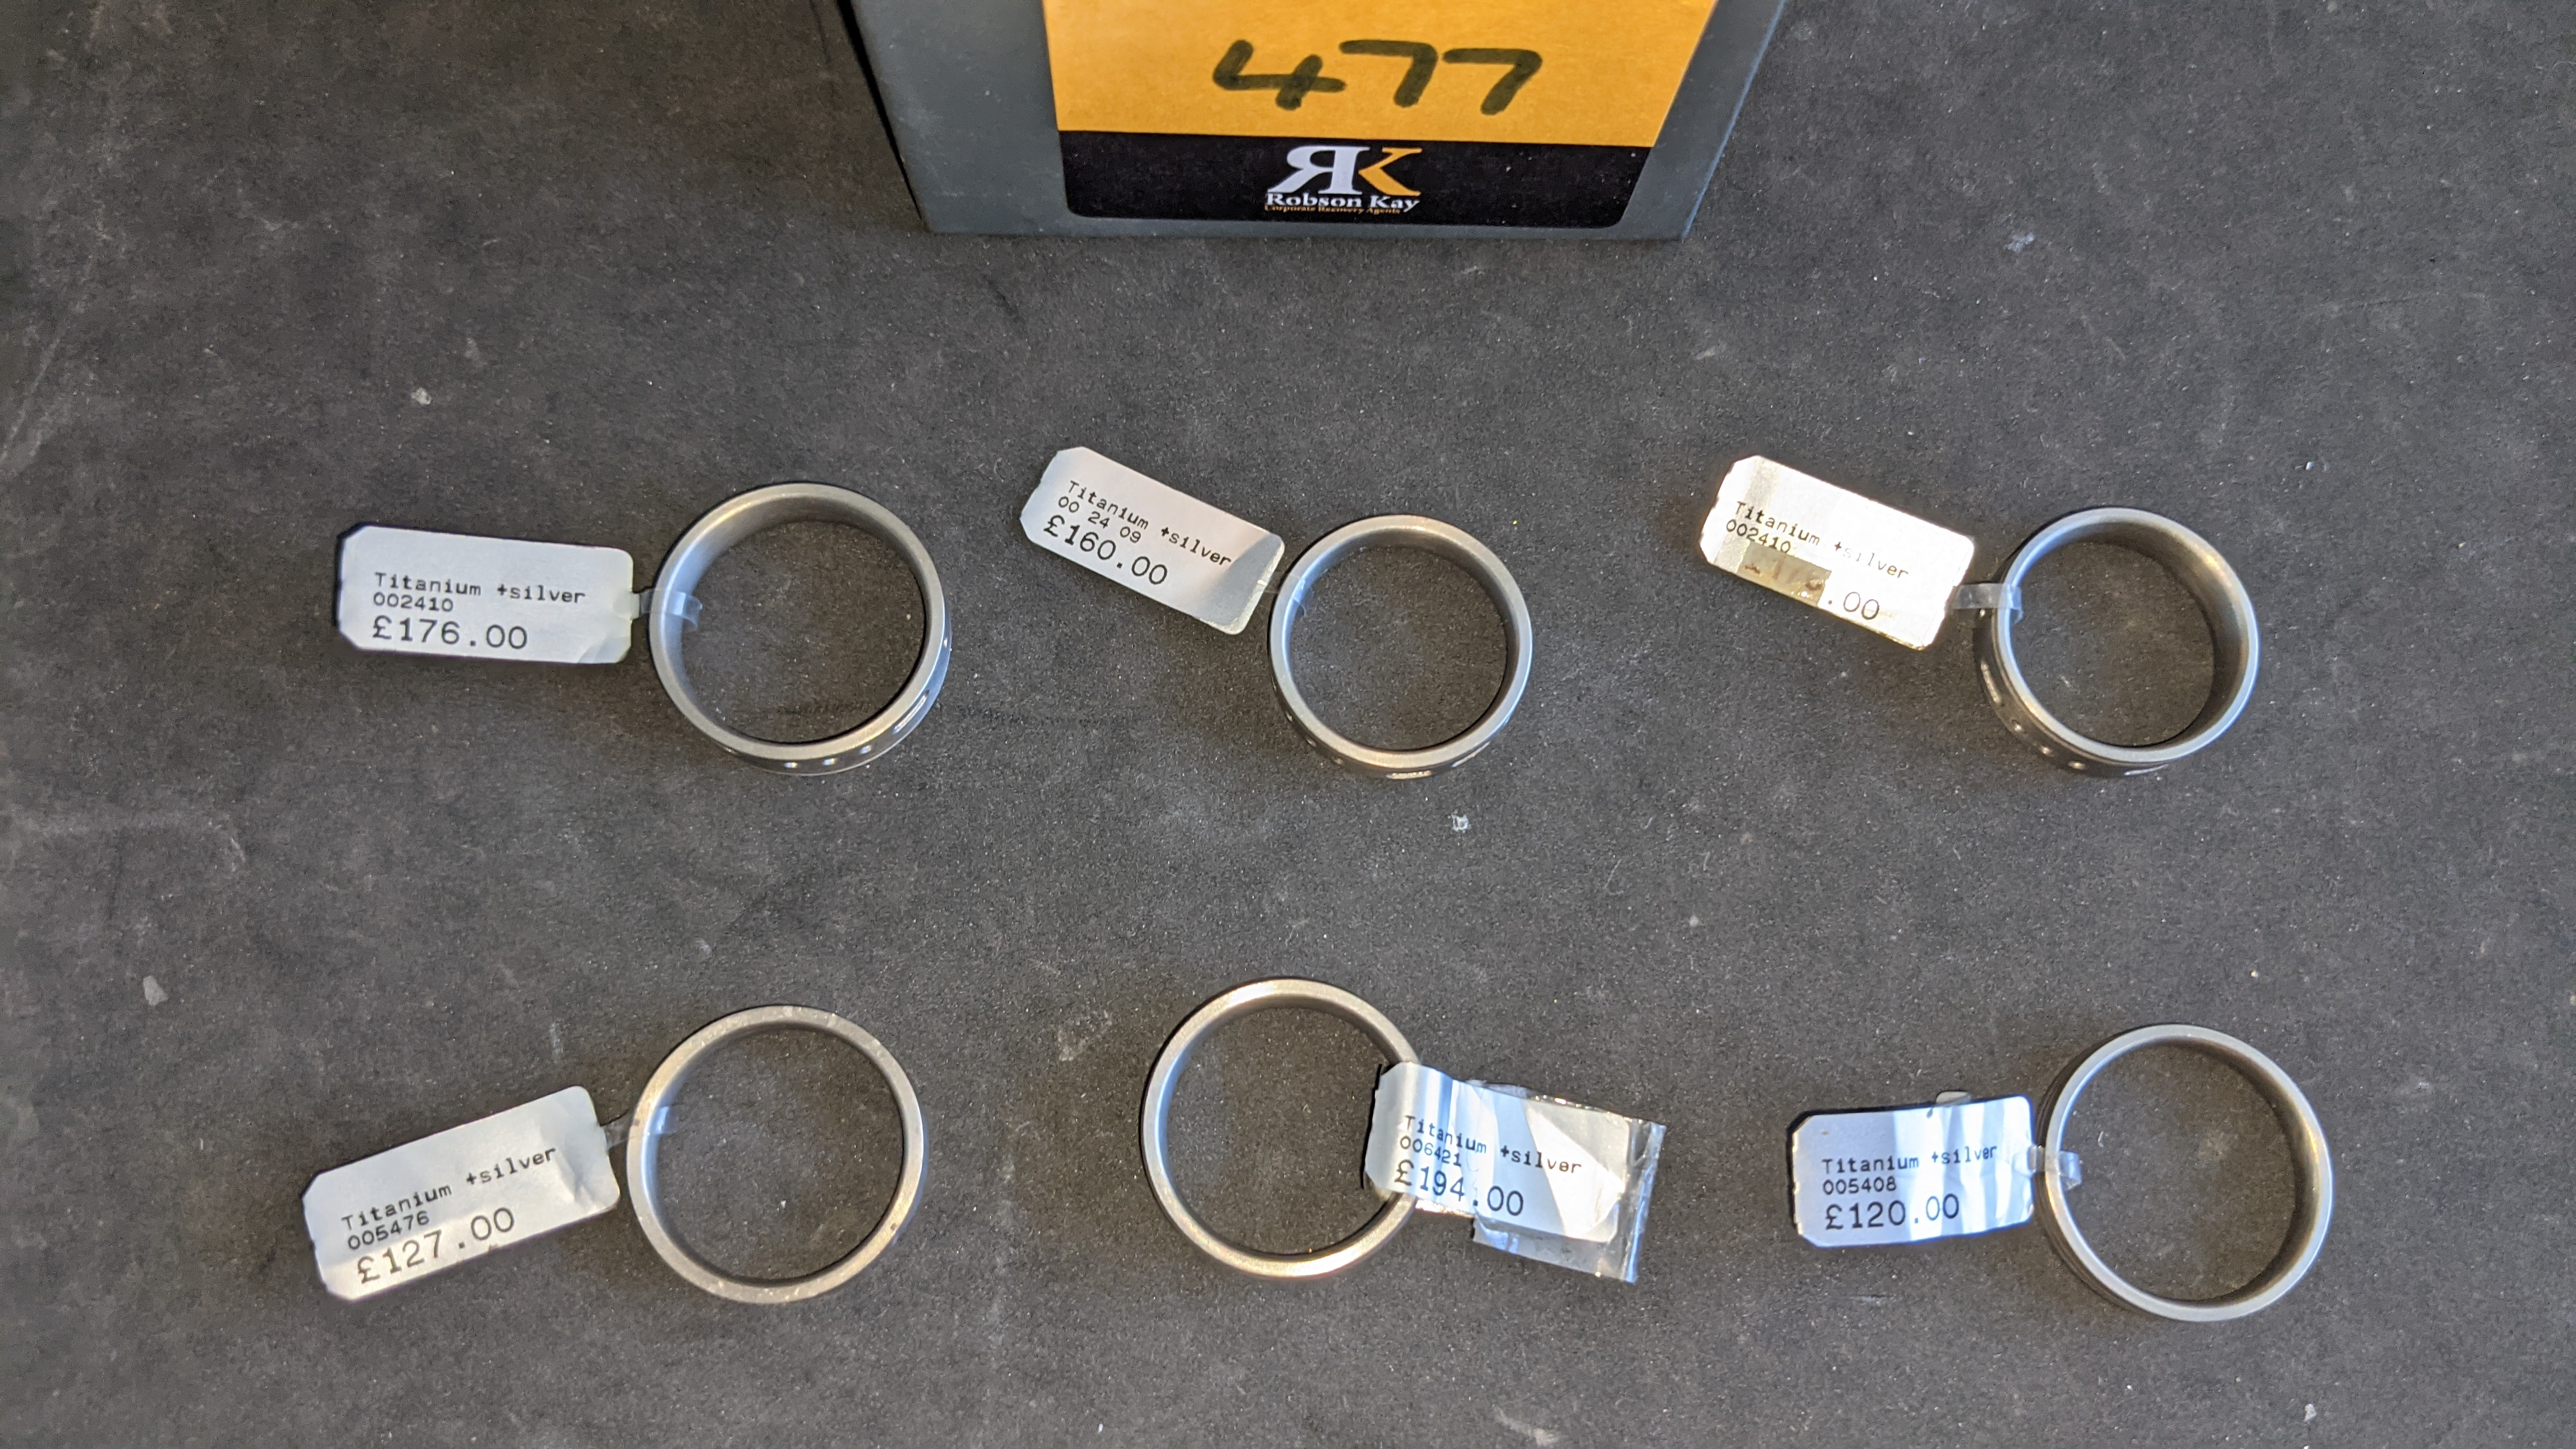 6 off assorted titanium & silver ring with RRPs from £120 - £194 per ring. Total RRP is £953 - Image 6 of 10